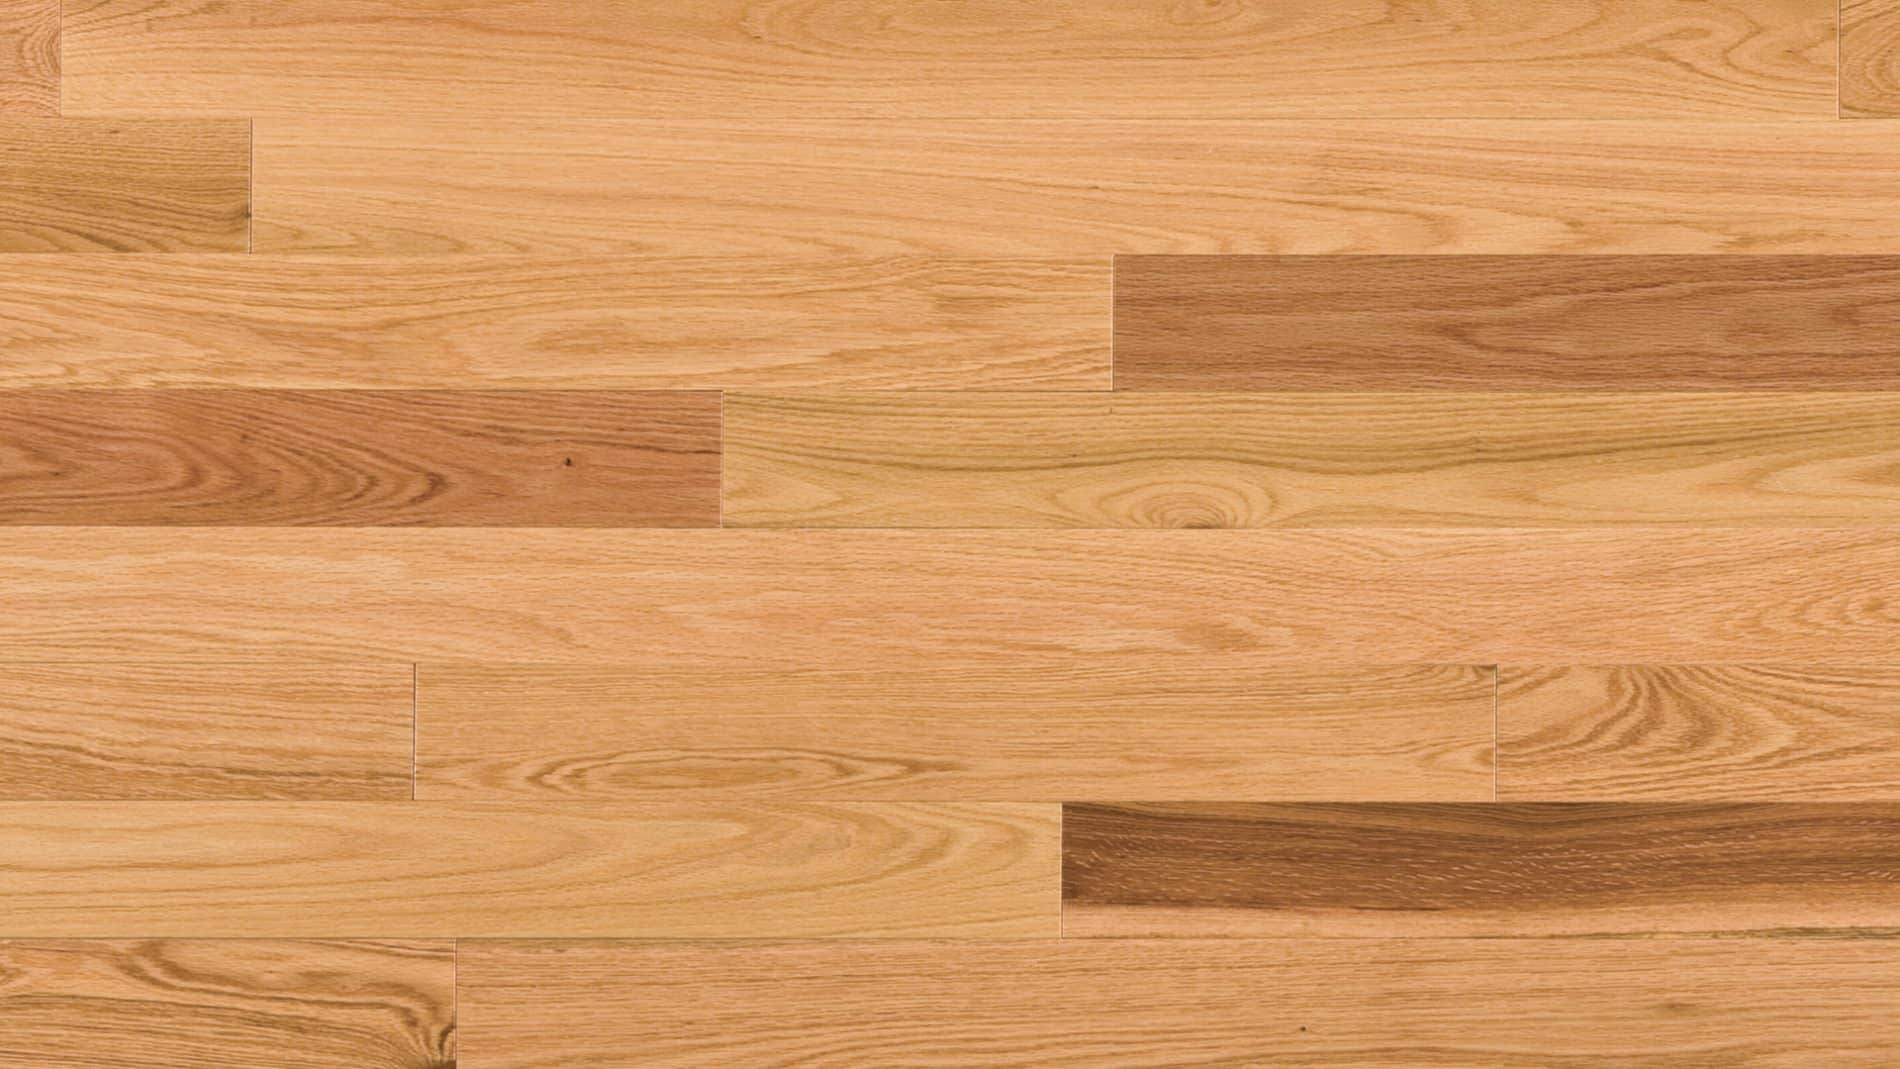 Hardwood floor | Red oak dubeau natural